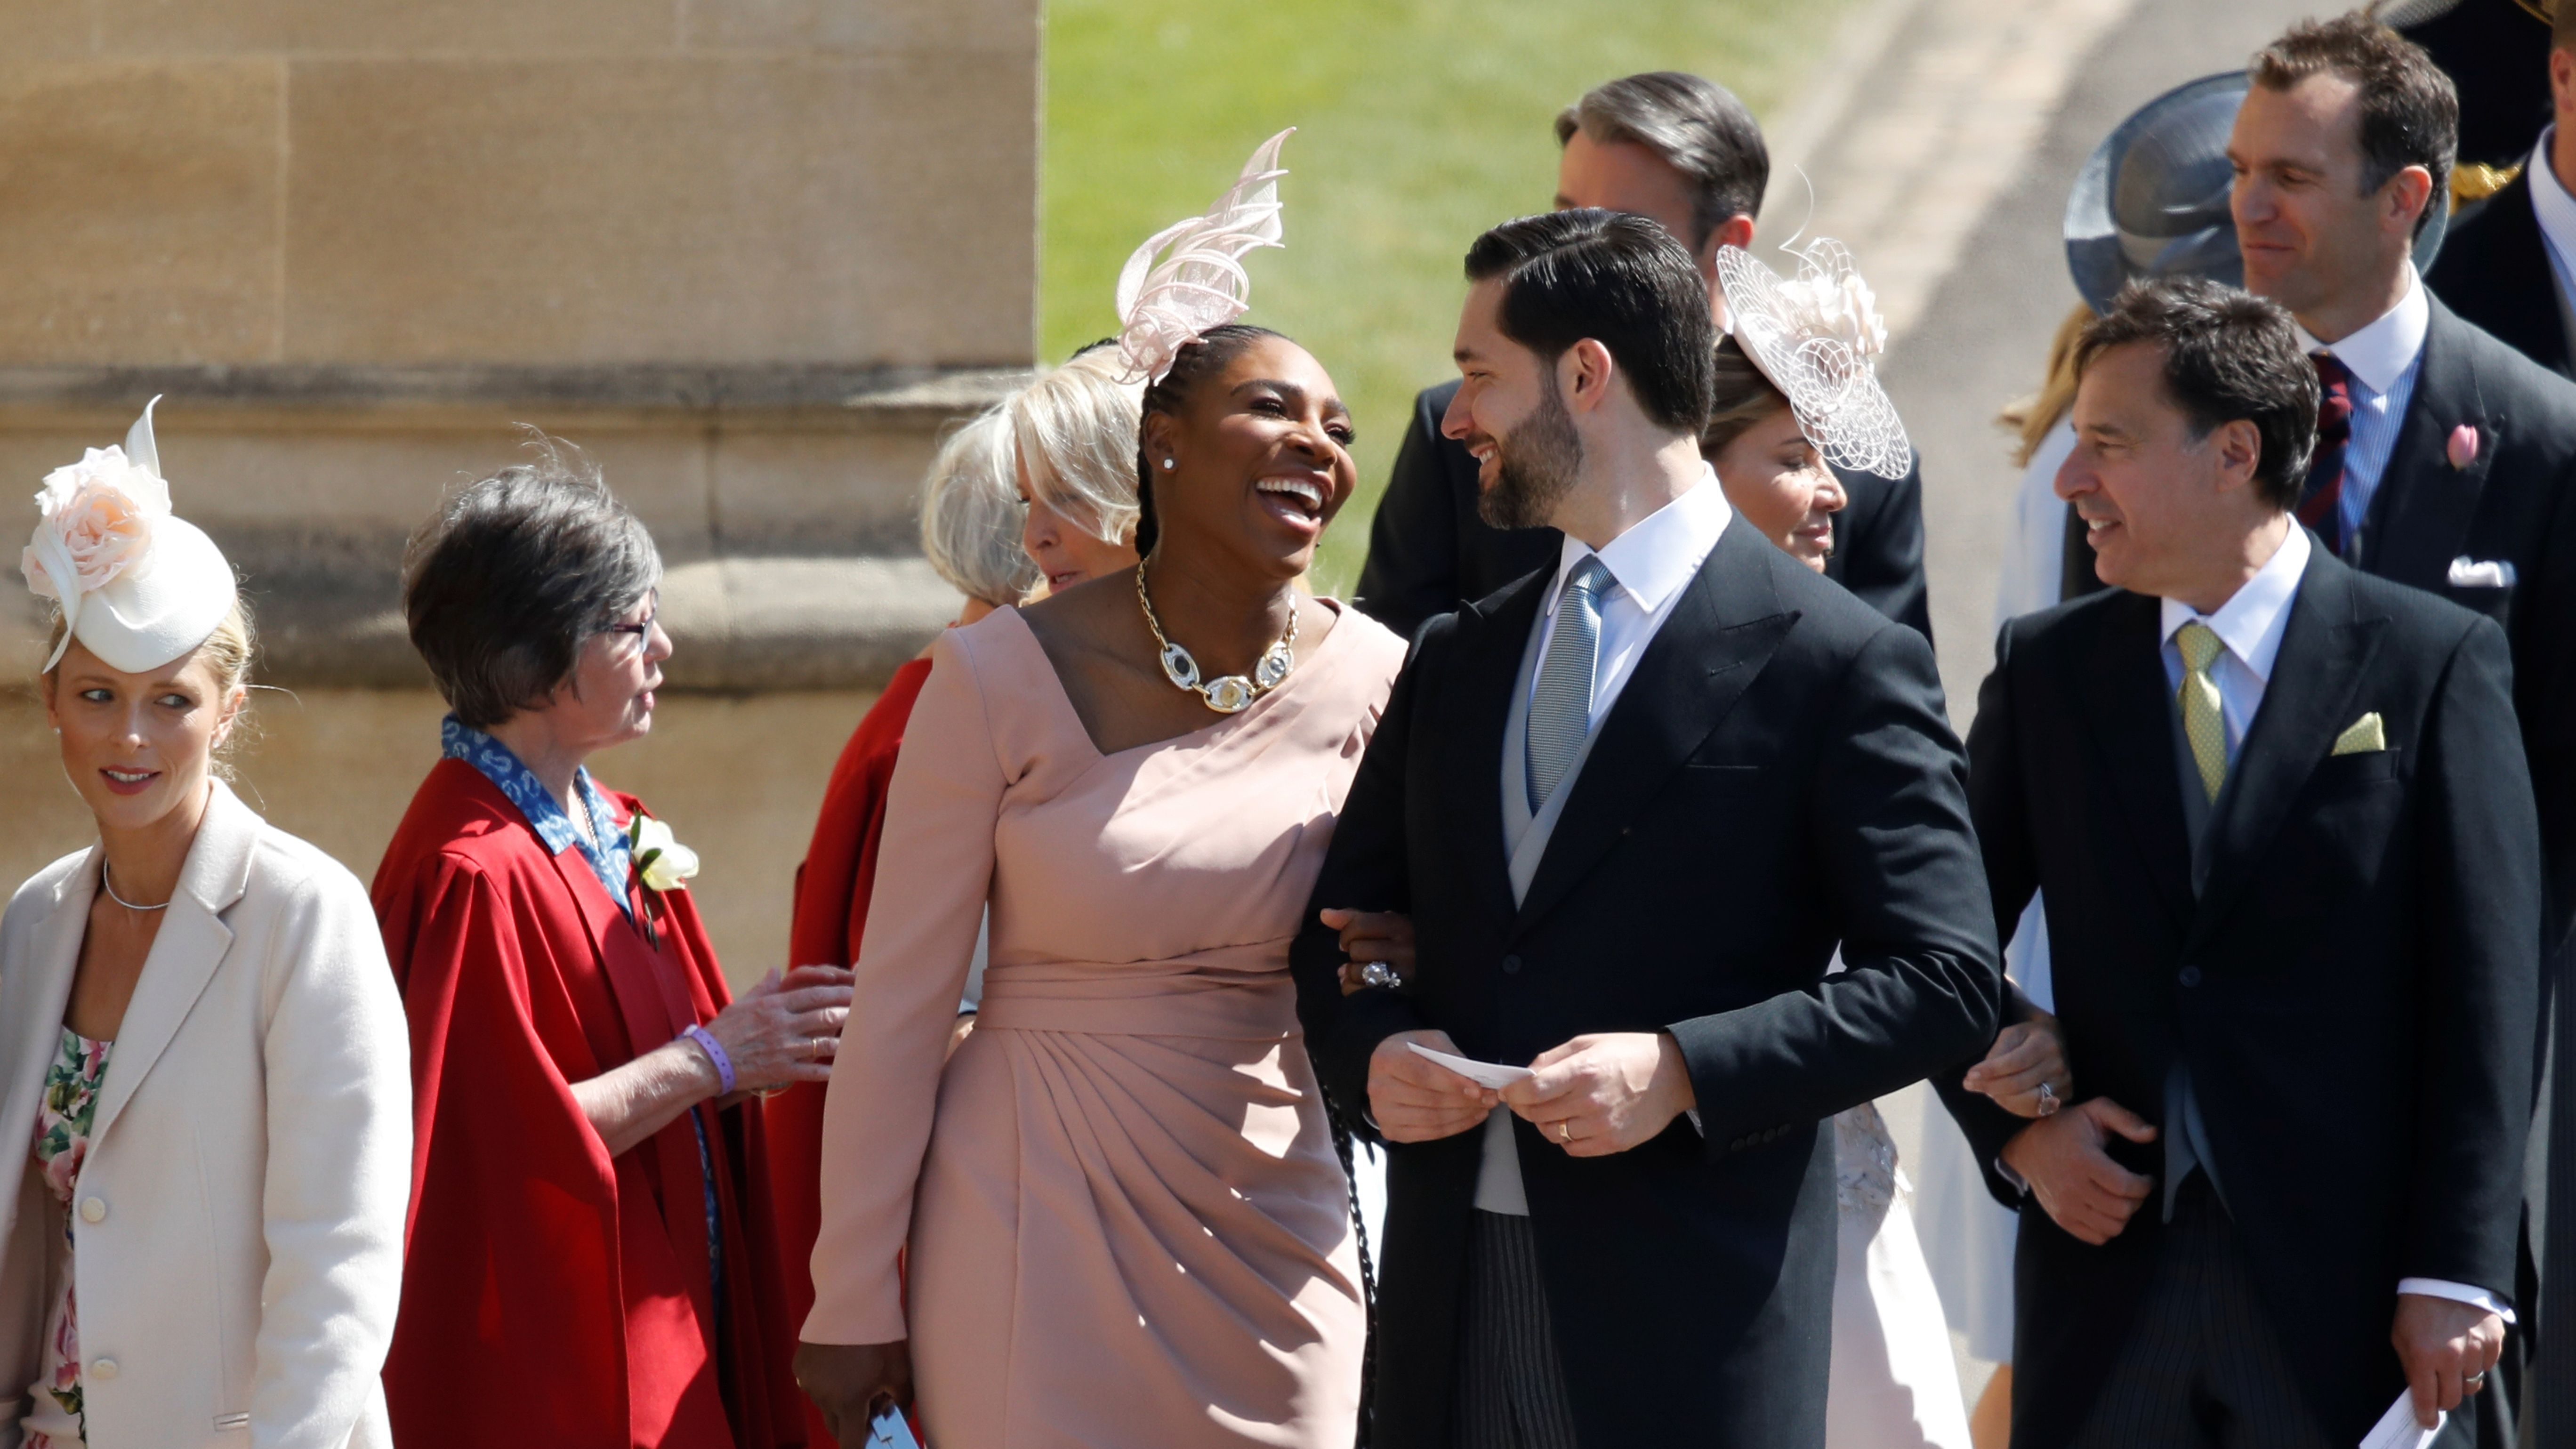 Pictures Of The Royal Wedding.Britain S Royal Wedding Serena Williams Wore Sneakers As Formalwear